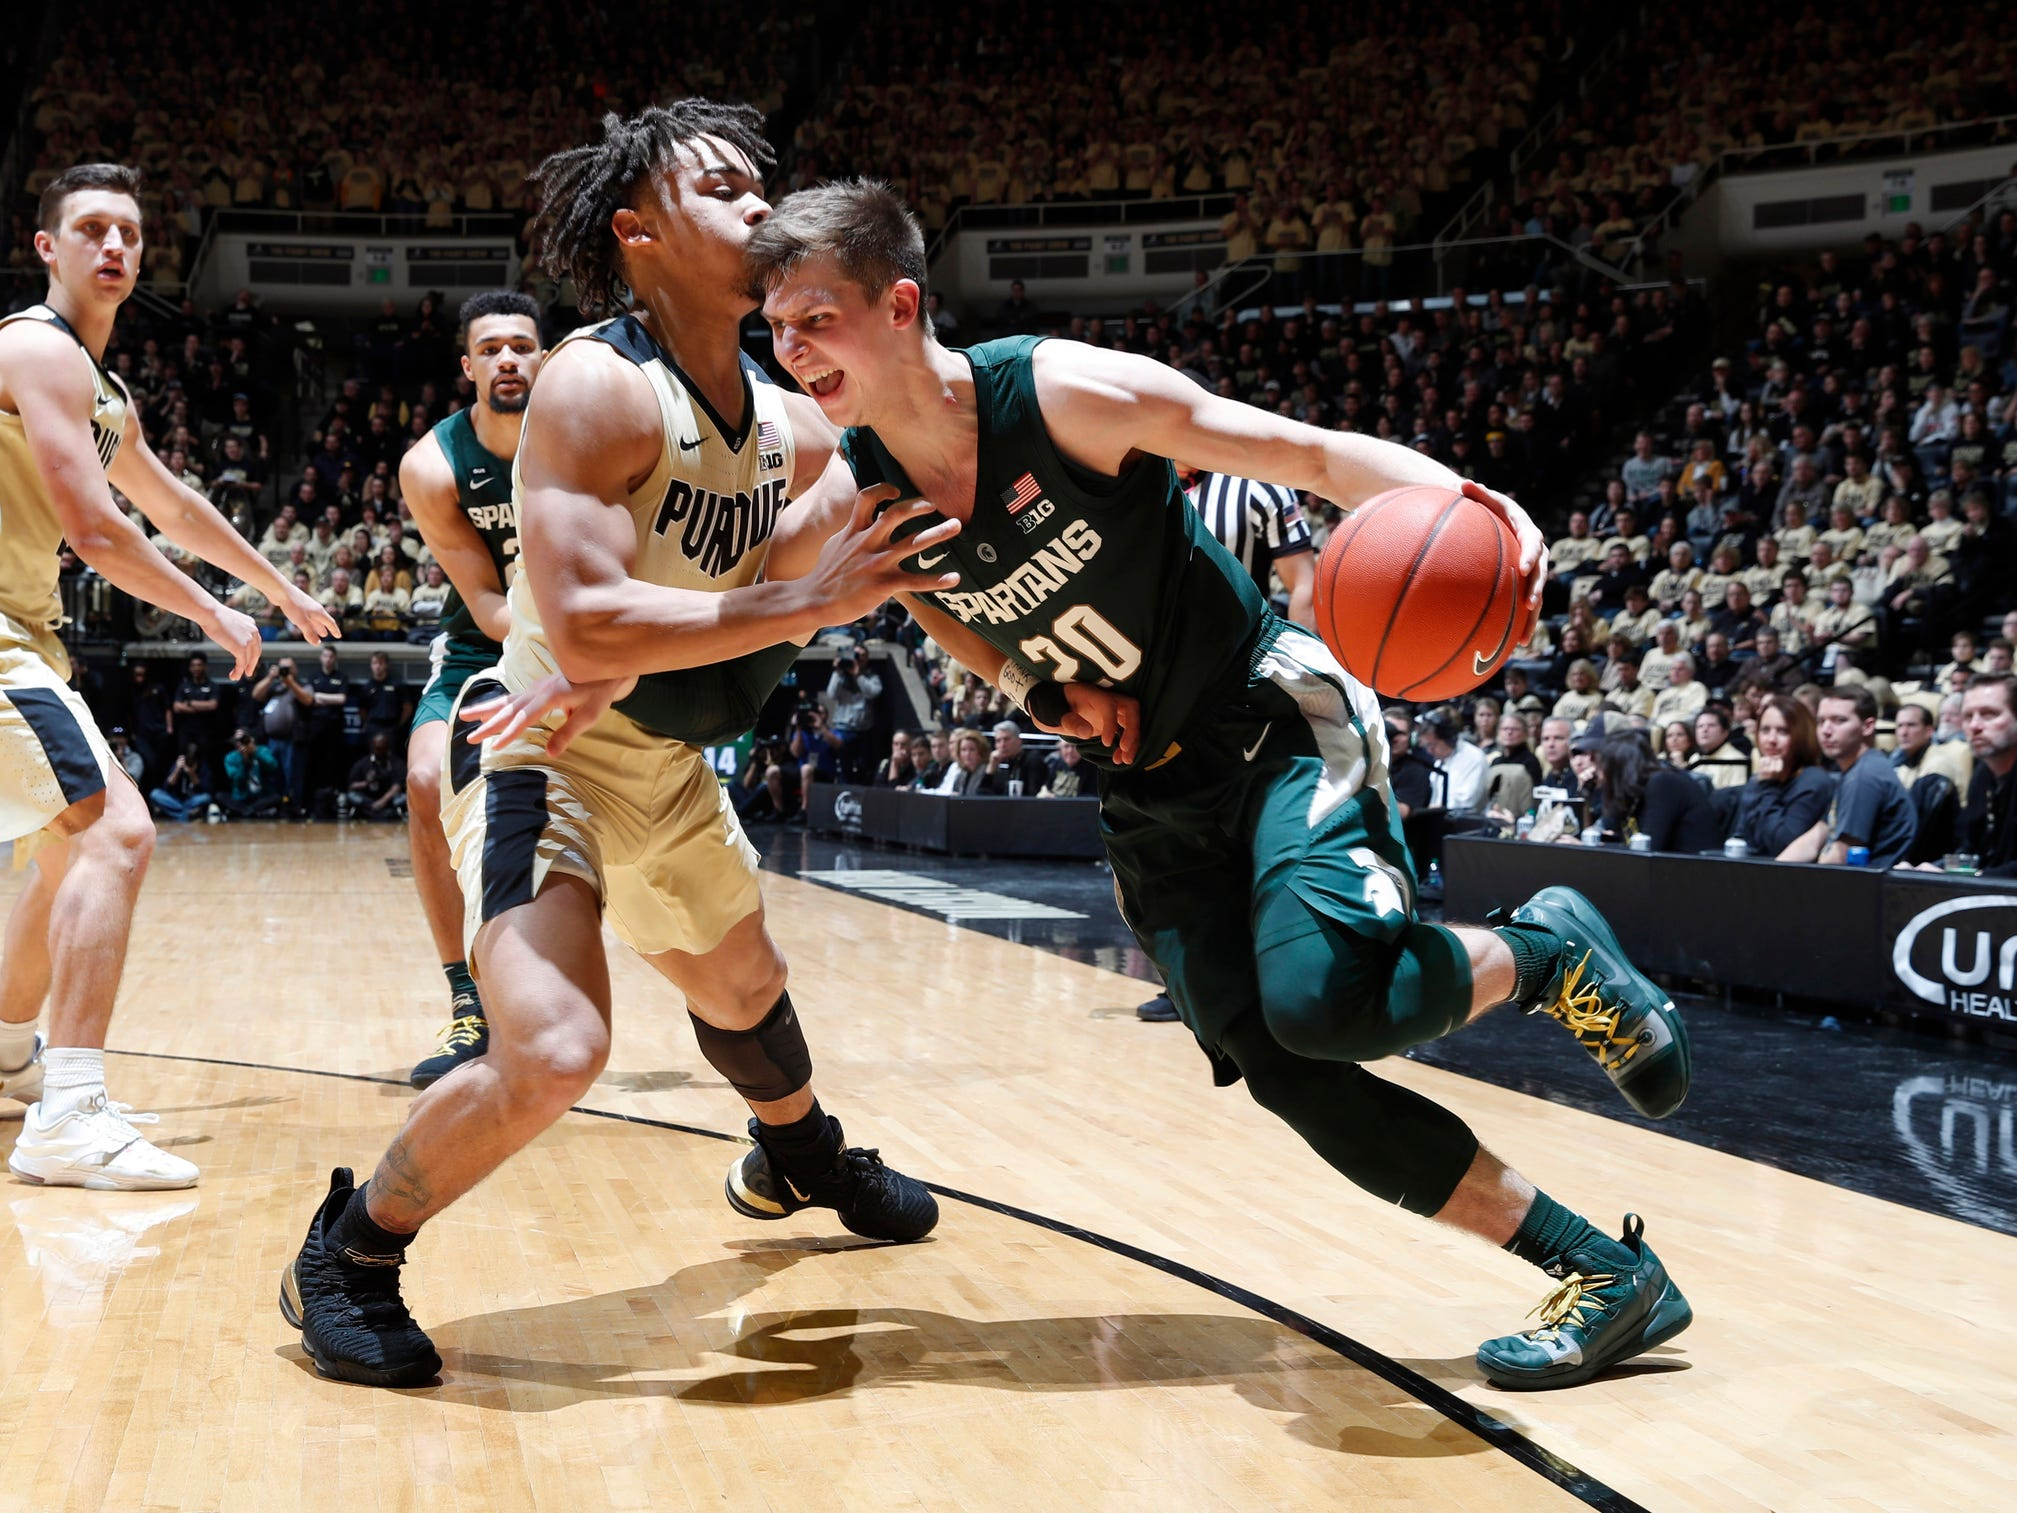 Michigan State guard Matt McQuaid dribbles the ball as Purdue guard Carsen Edwards defends during the first half on Sunday, Jan. 27, 2019, in West Lafayette, Ind.